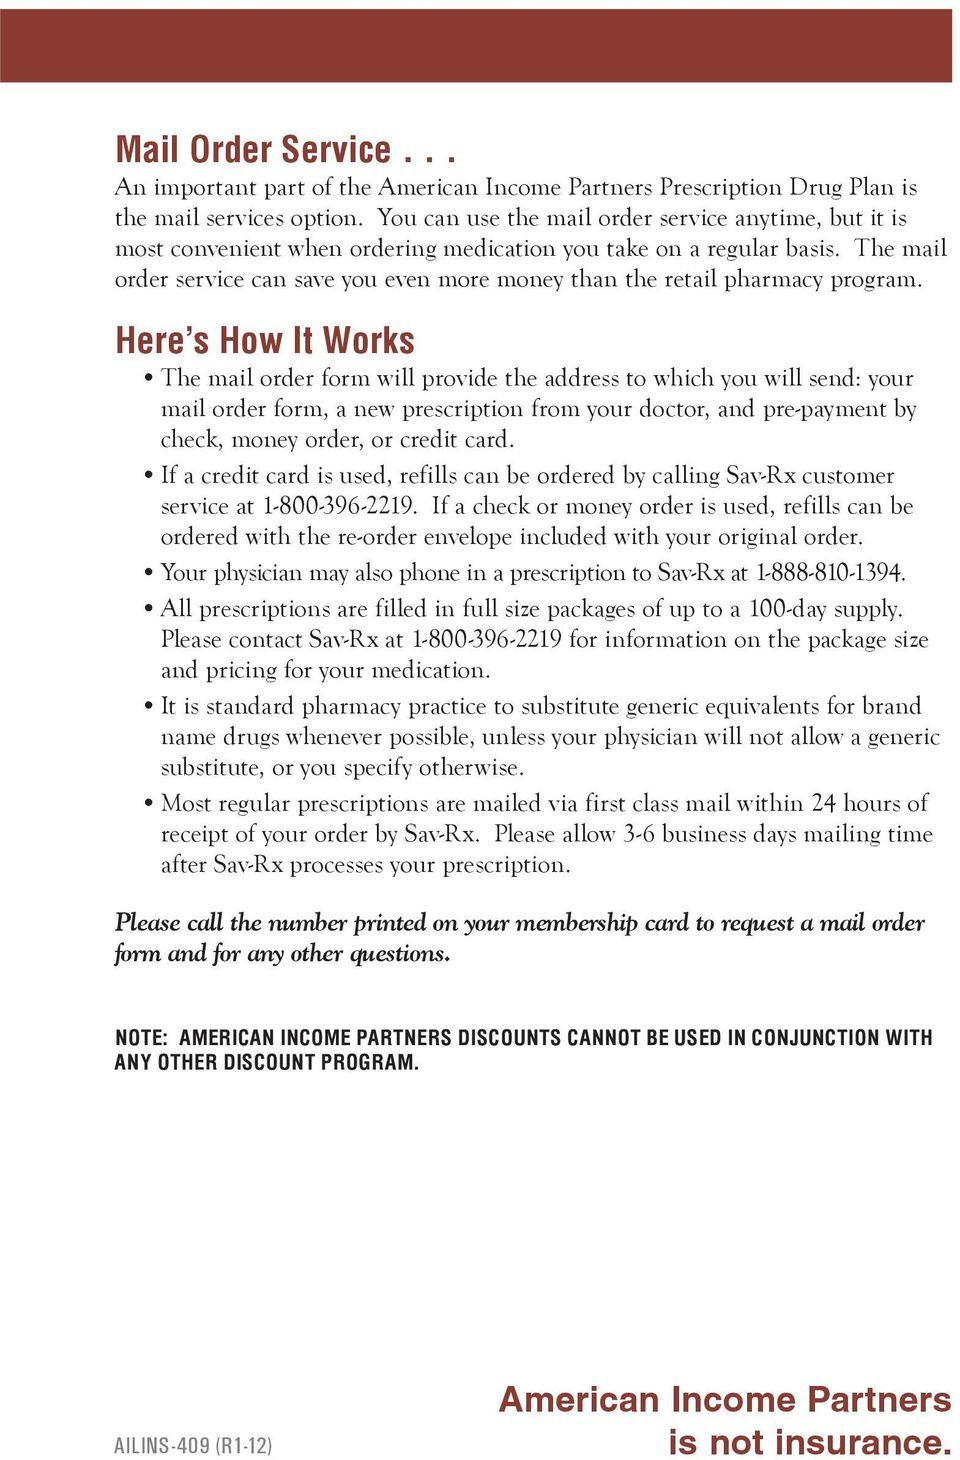 American Income Partners is not insurance  - PDF